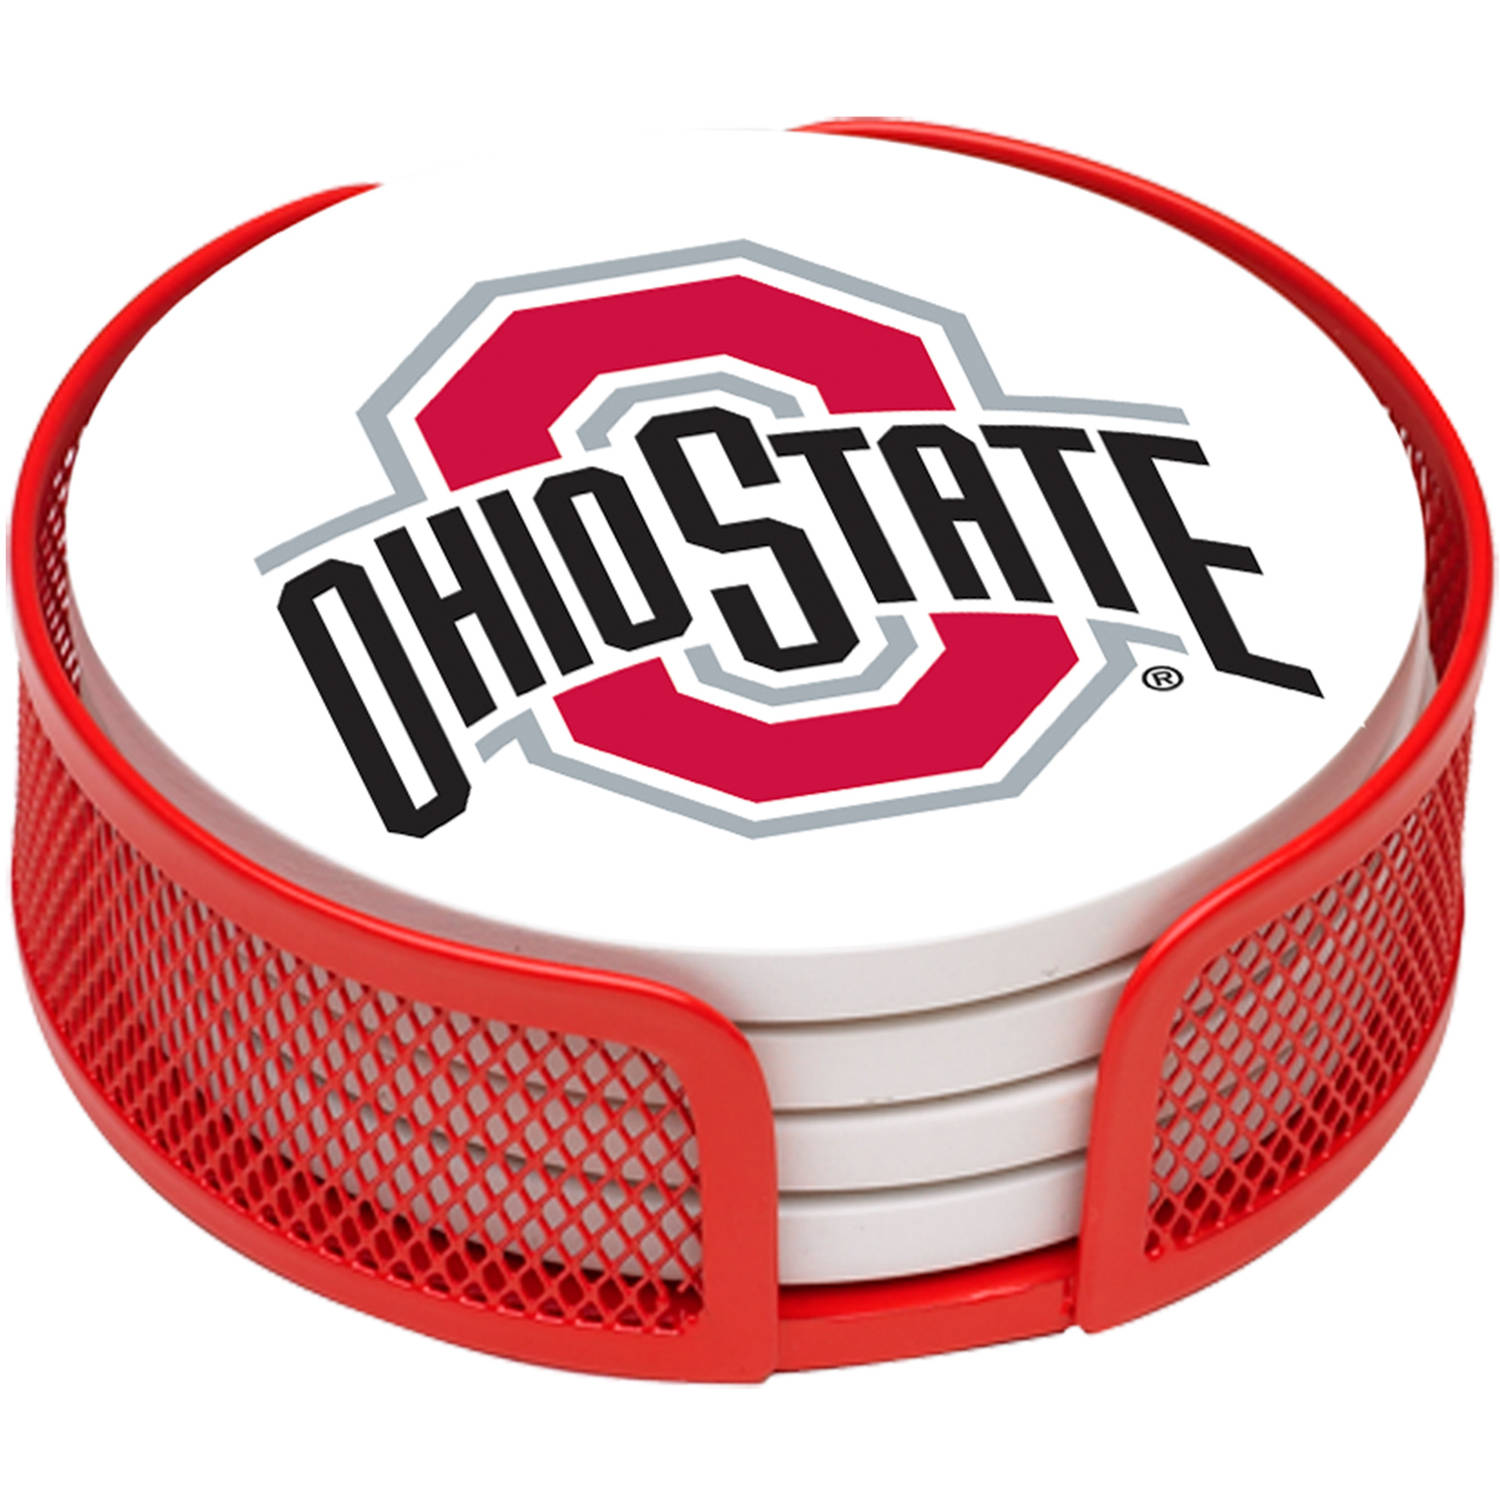 Stoneware Drink Coaster Set with Holder Included, Ohio State University